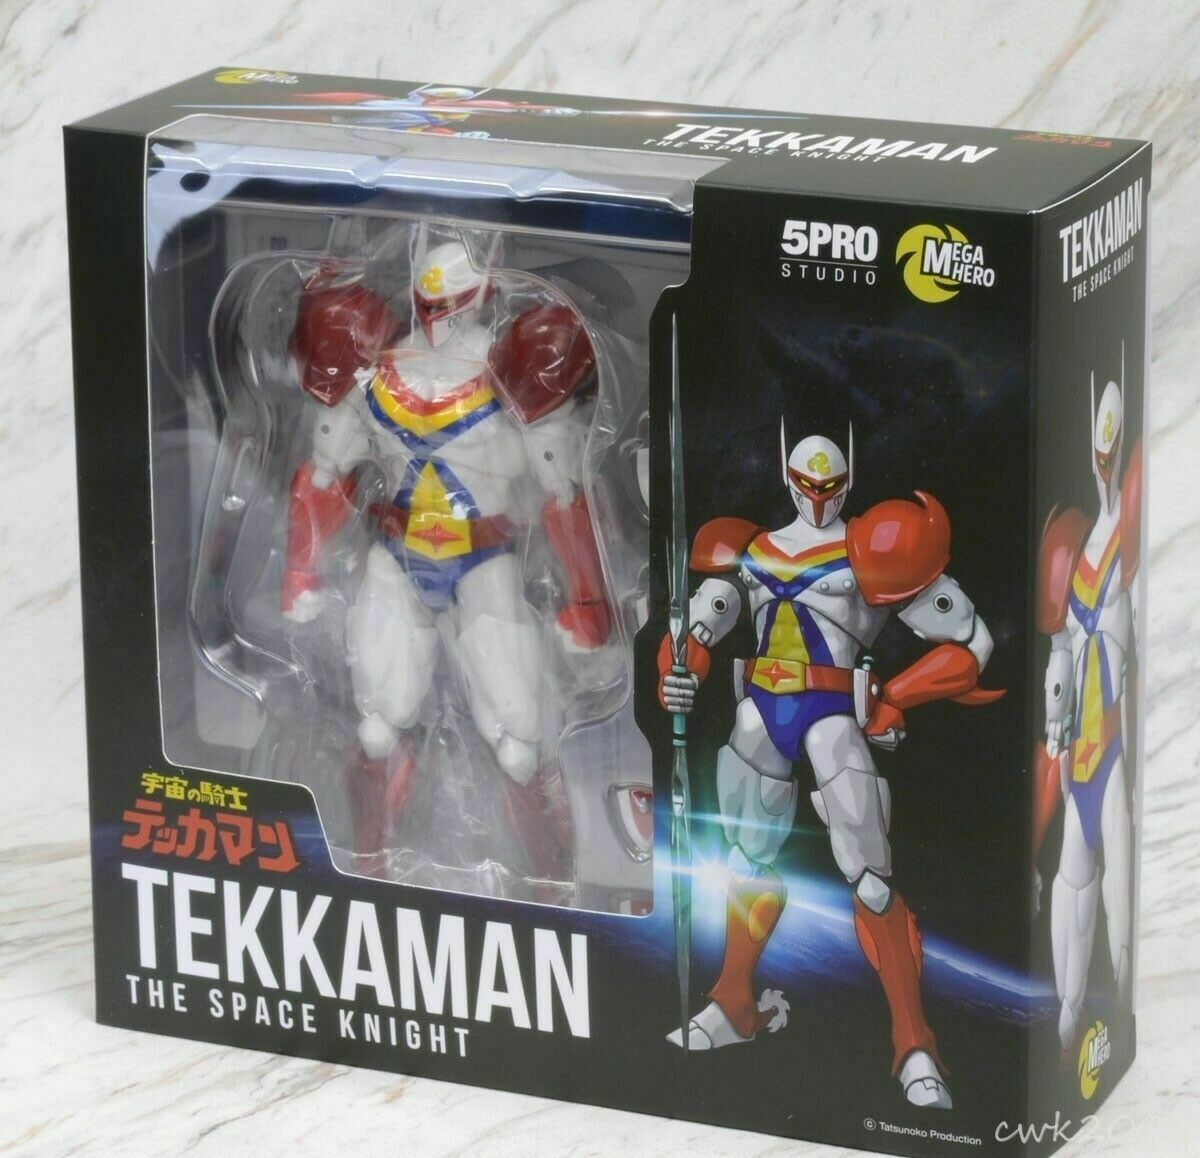 Mega Hero Tekkaman Space Knight Tatsunoko 5PRO Blitzway Medicom Action Figure